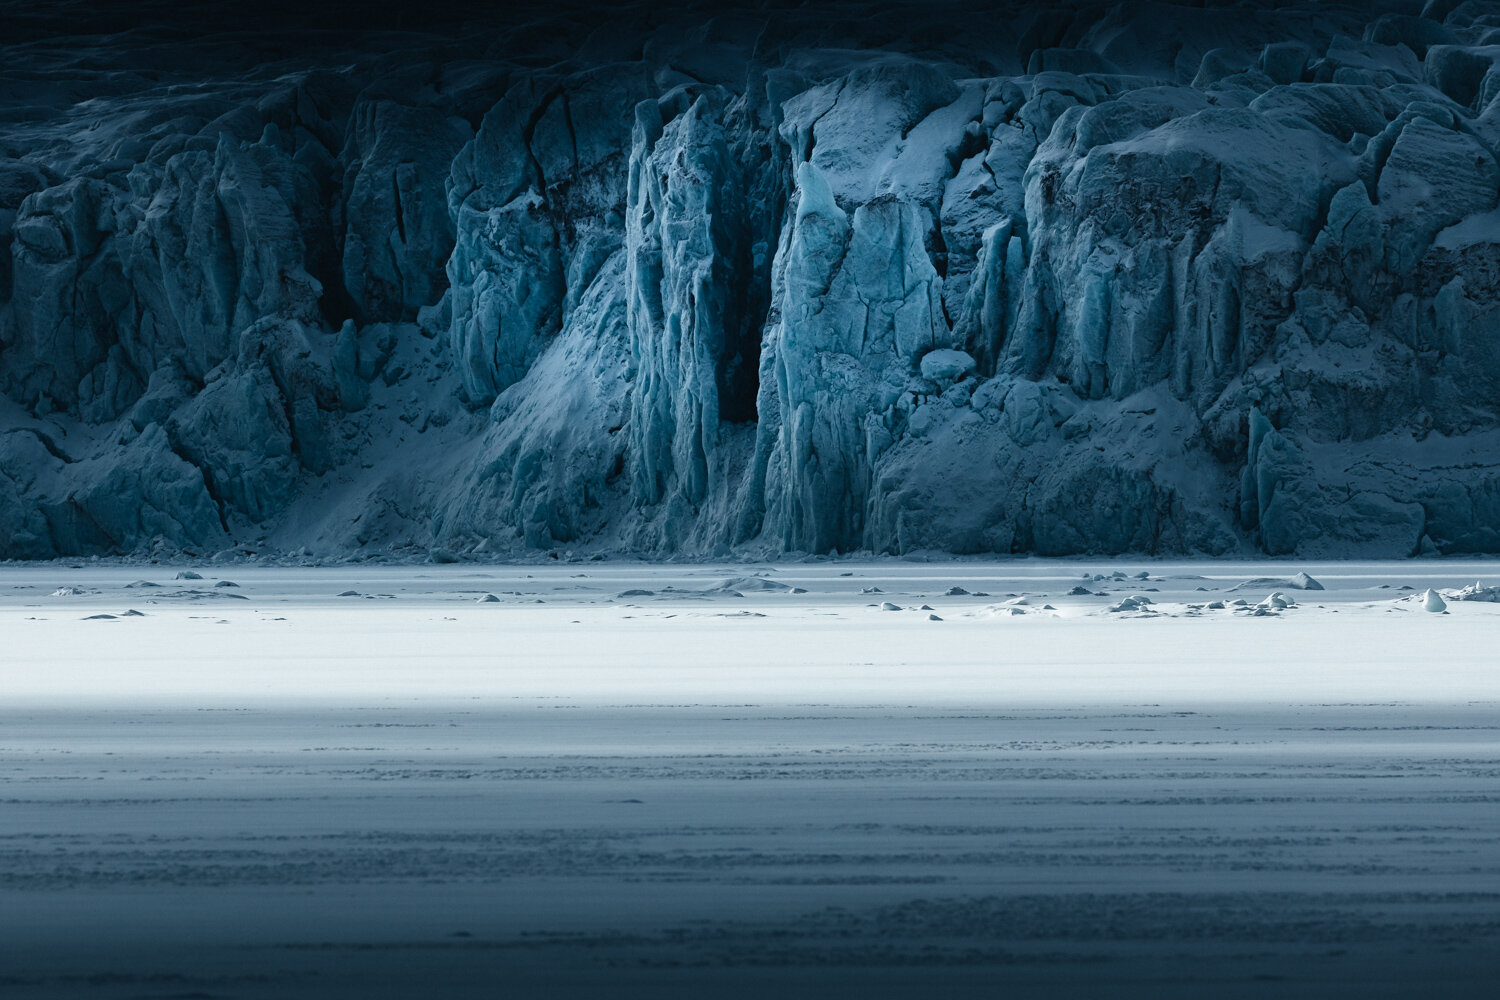 Landscape photo by Hannes Becker, glaciers, Svalbard, Norway.